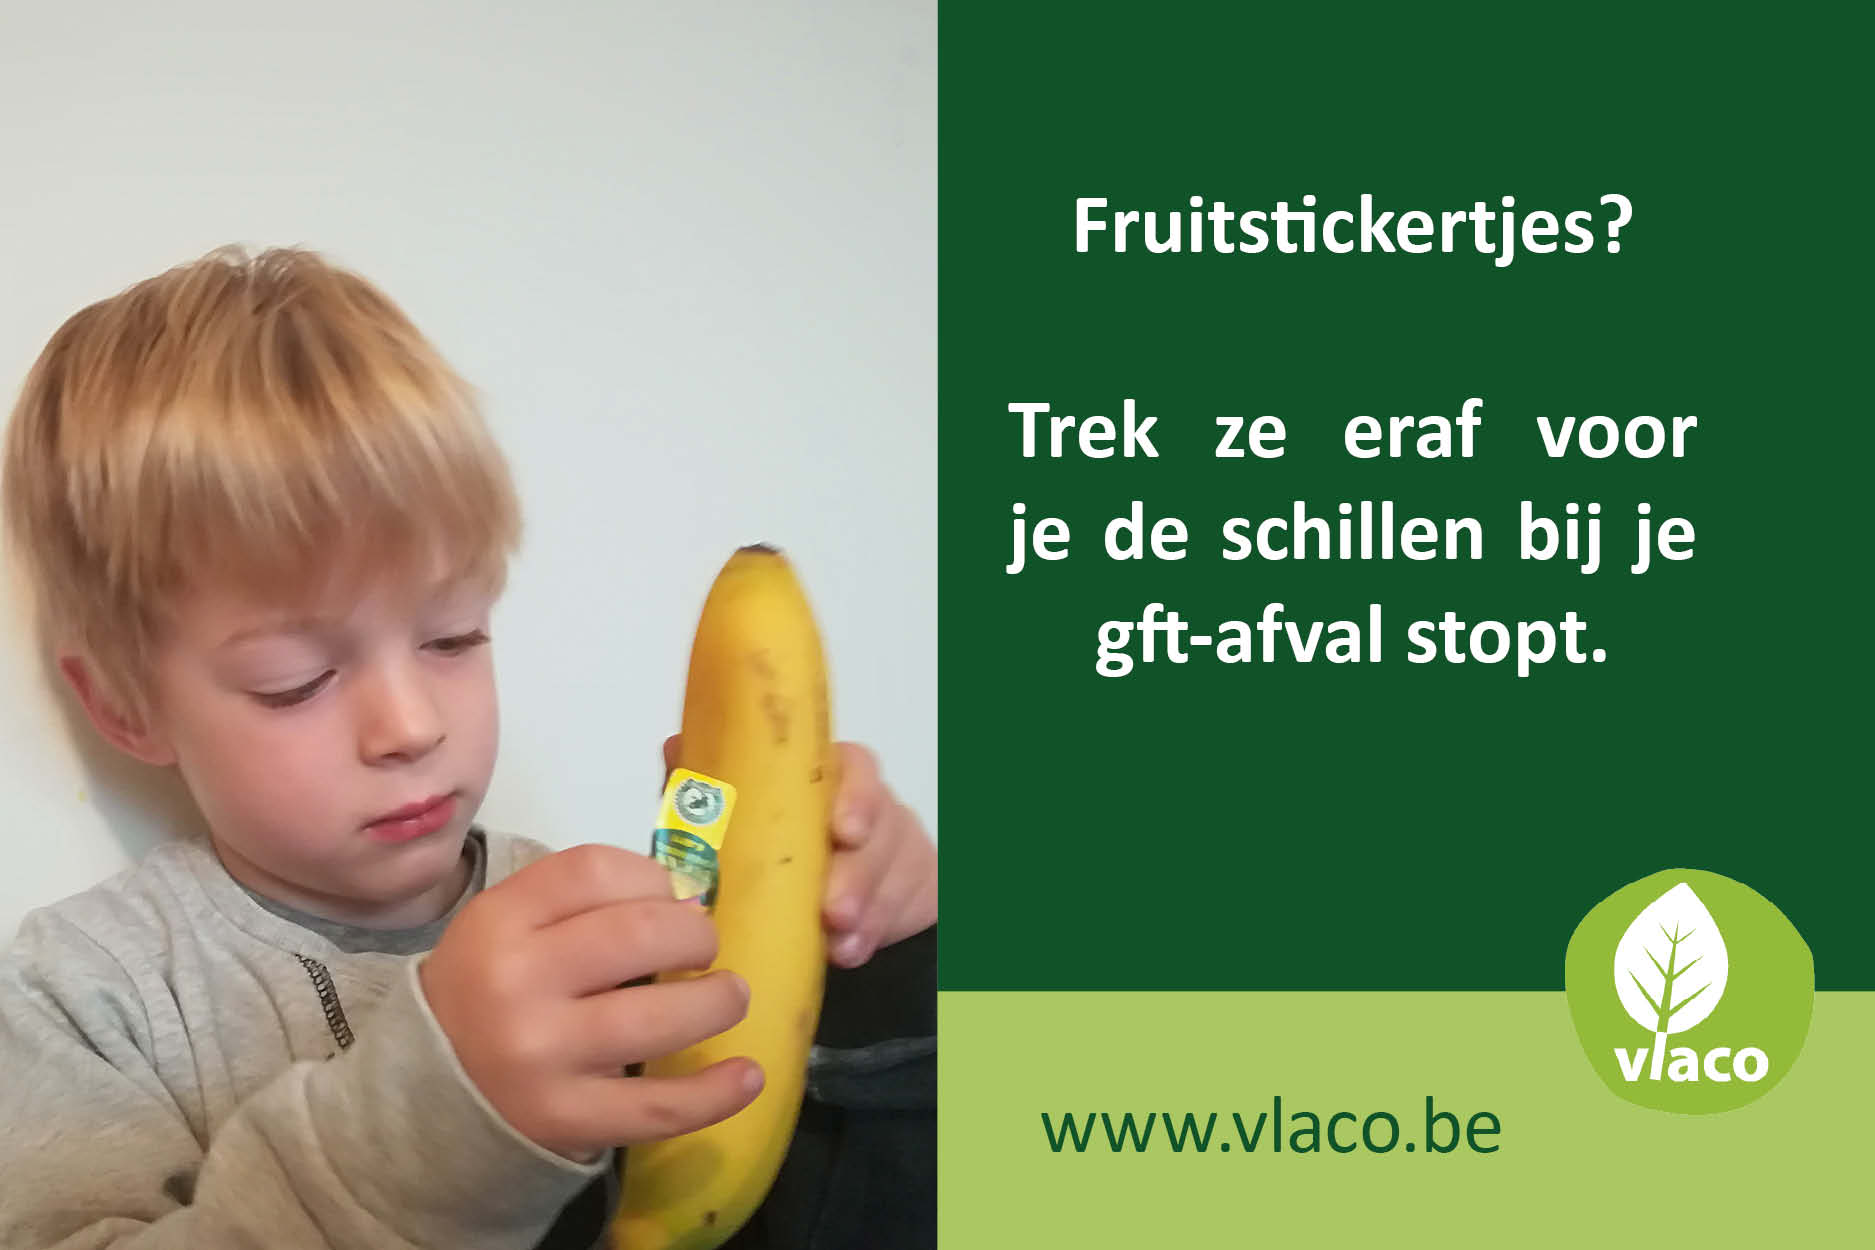 Trek fruistickertjes eraf